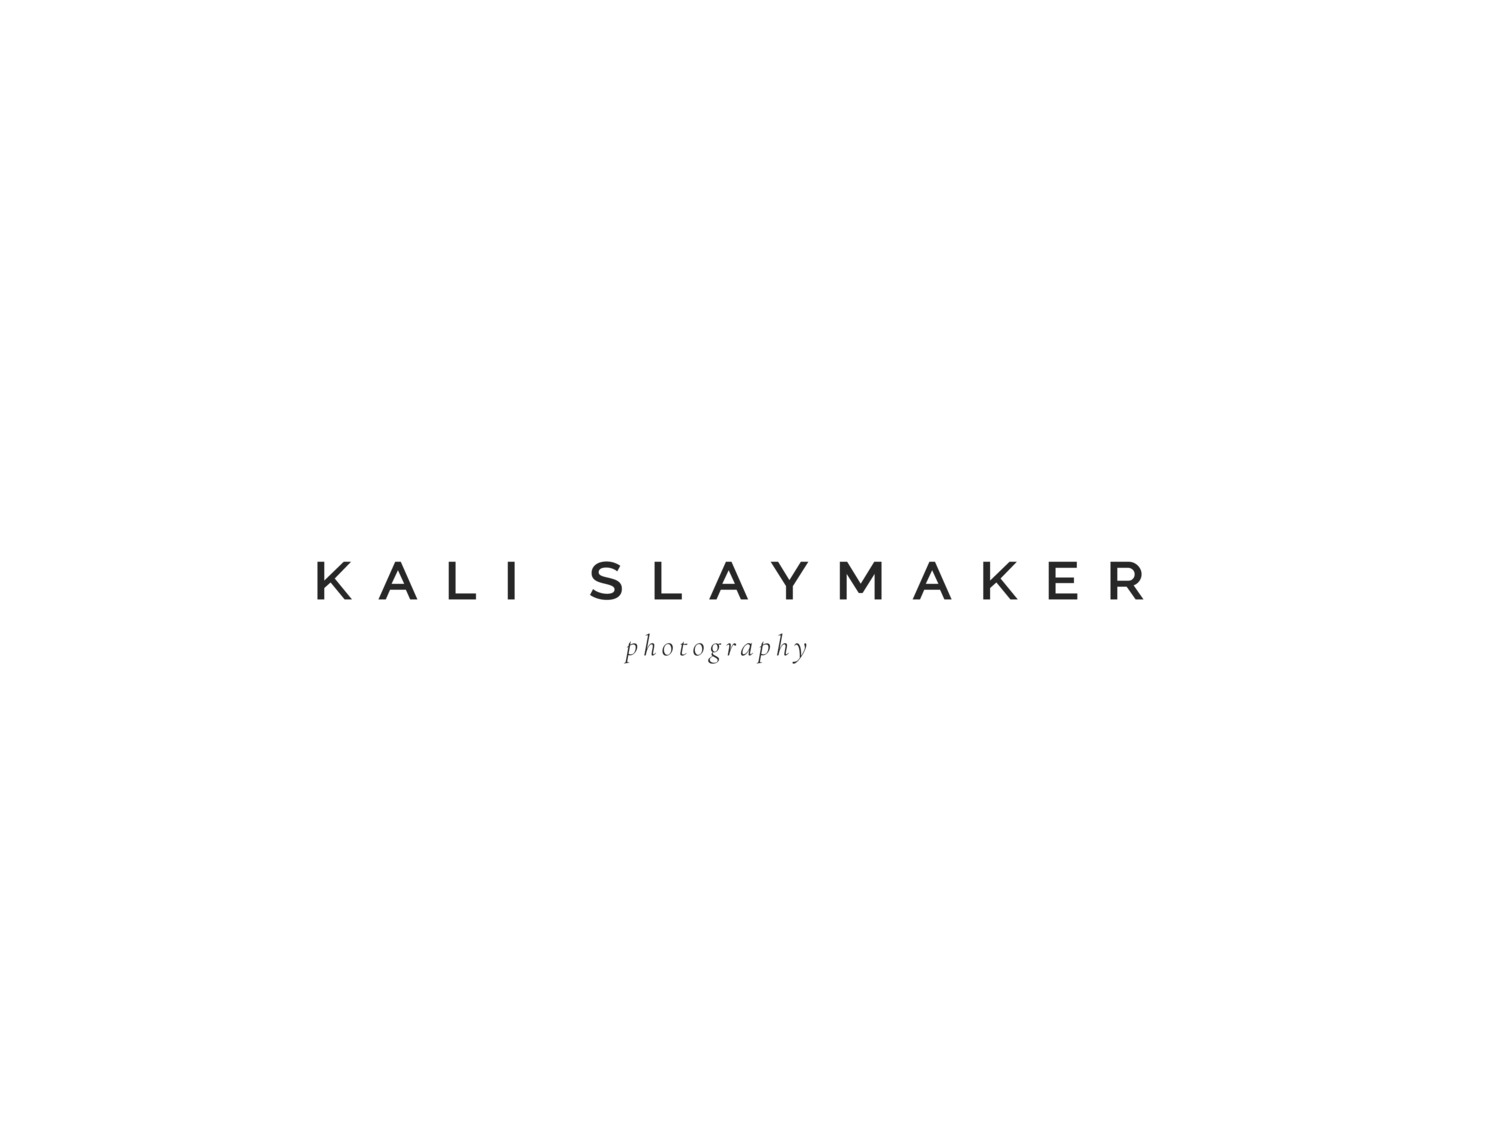 Kali Slaymaker Photography | Iowa City Wedding Photographer + Destination Elopements